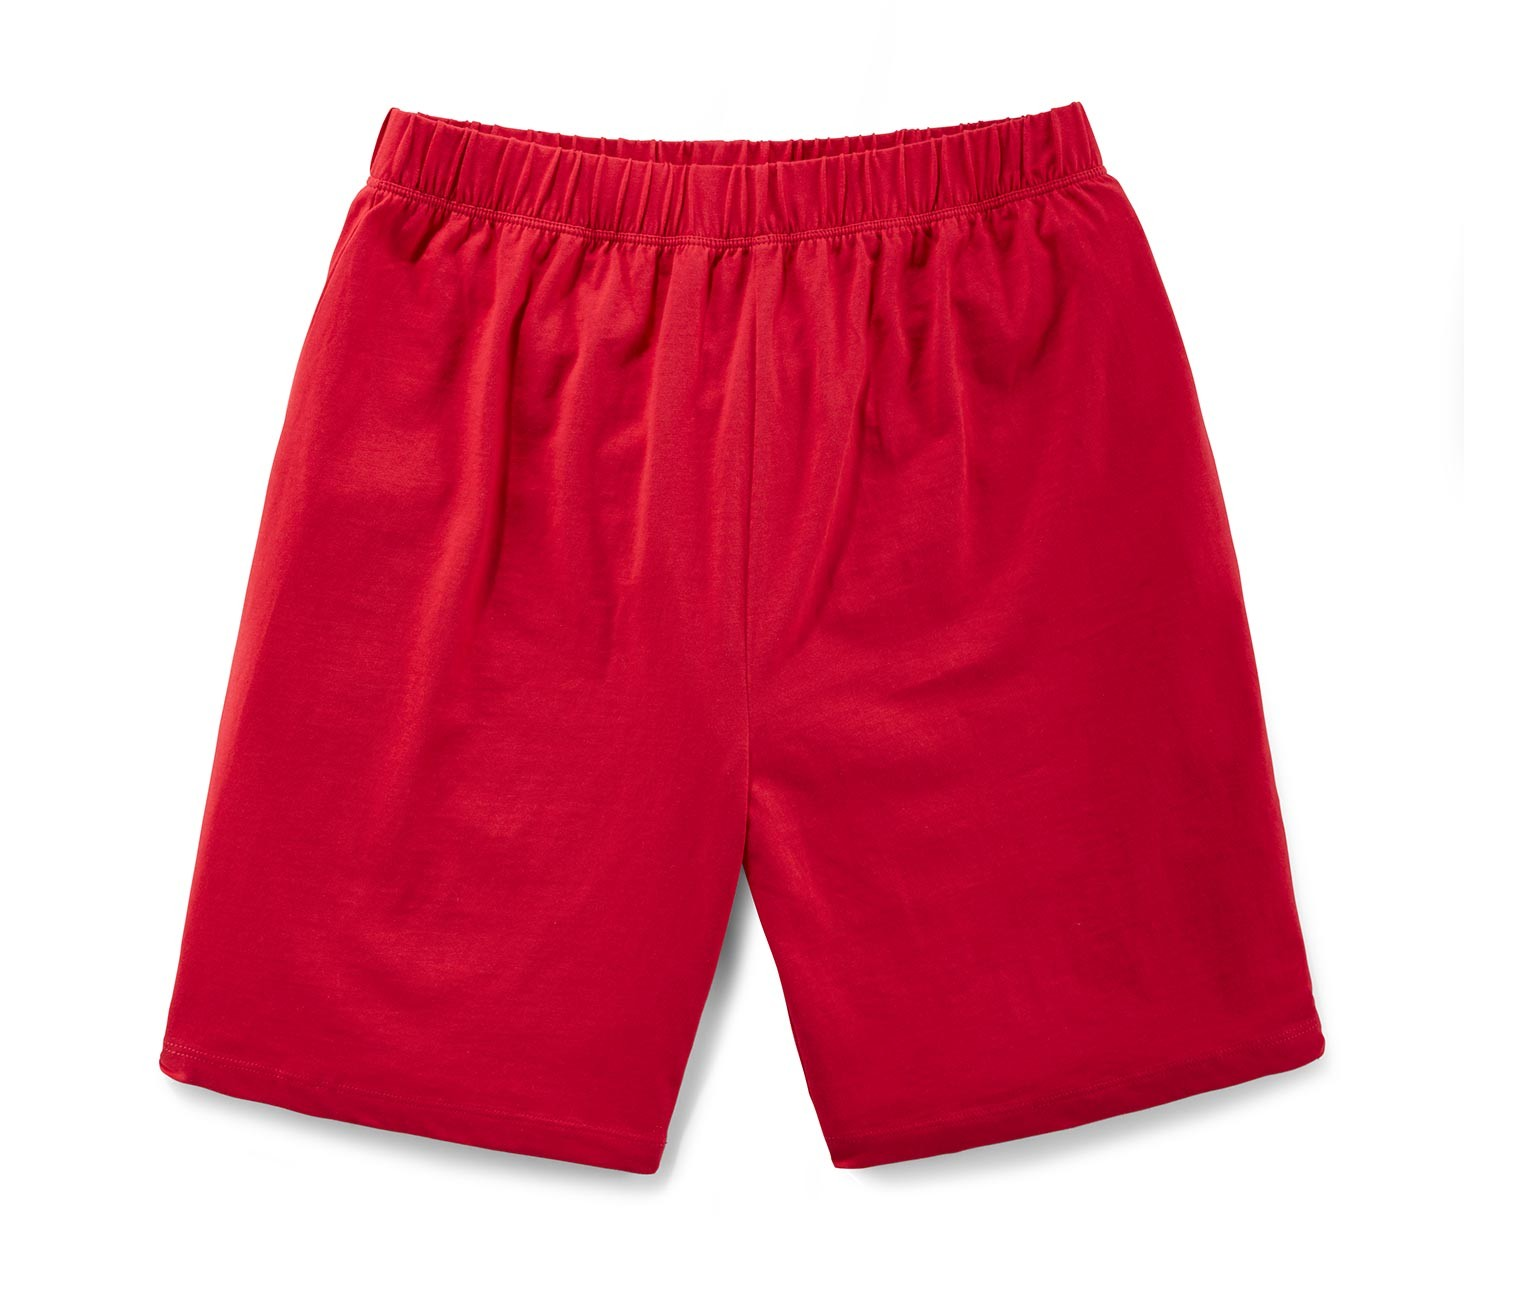 Find great deals on eBay for mens pajama shorts. Shop with confidence.